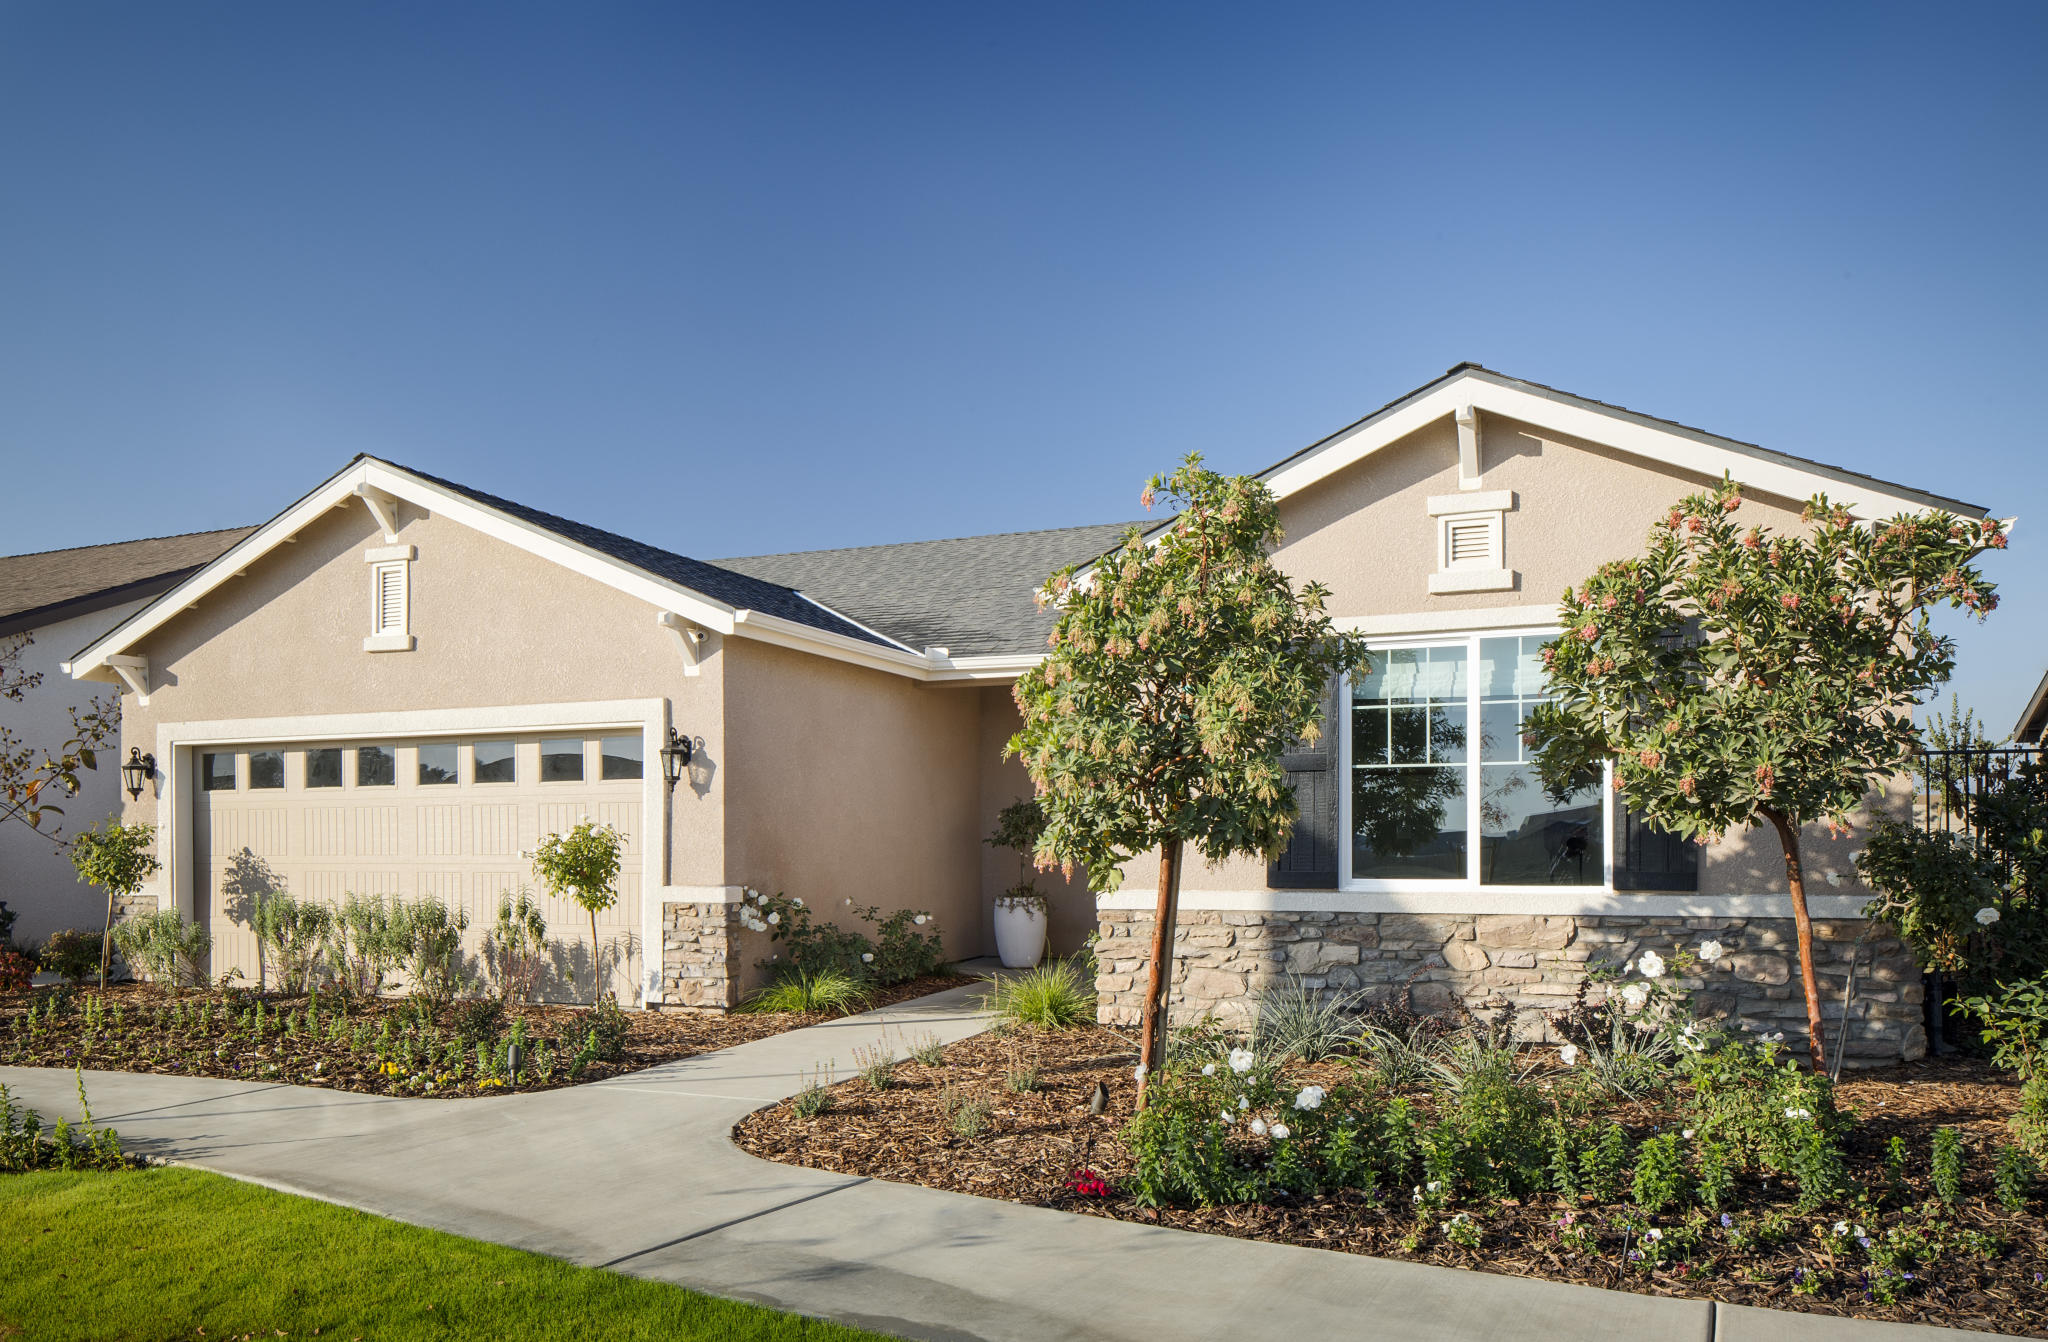 Chandler Park By San Joaquin Valley Homes Hanford Ca 93230